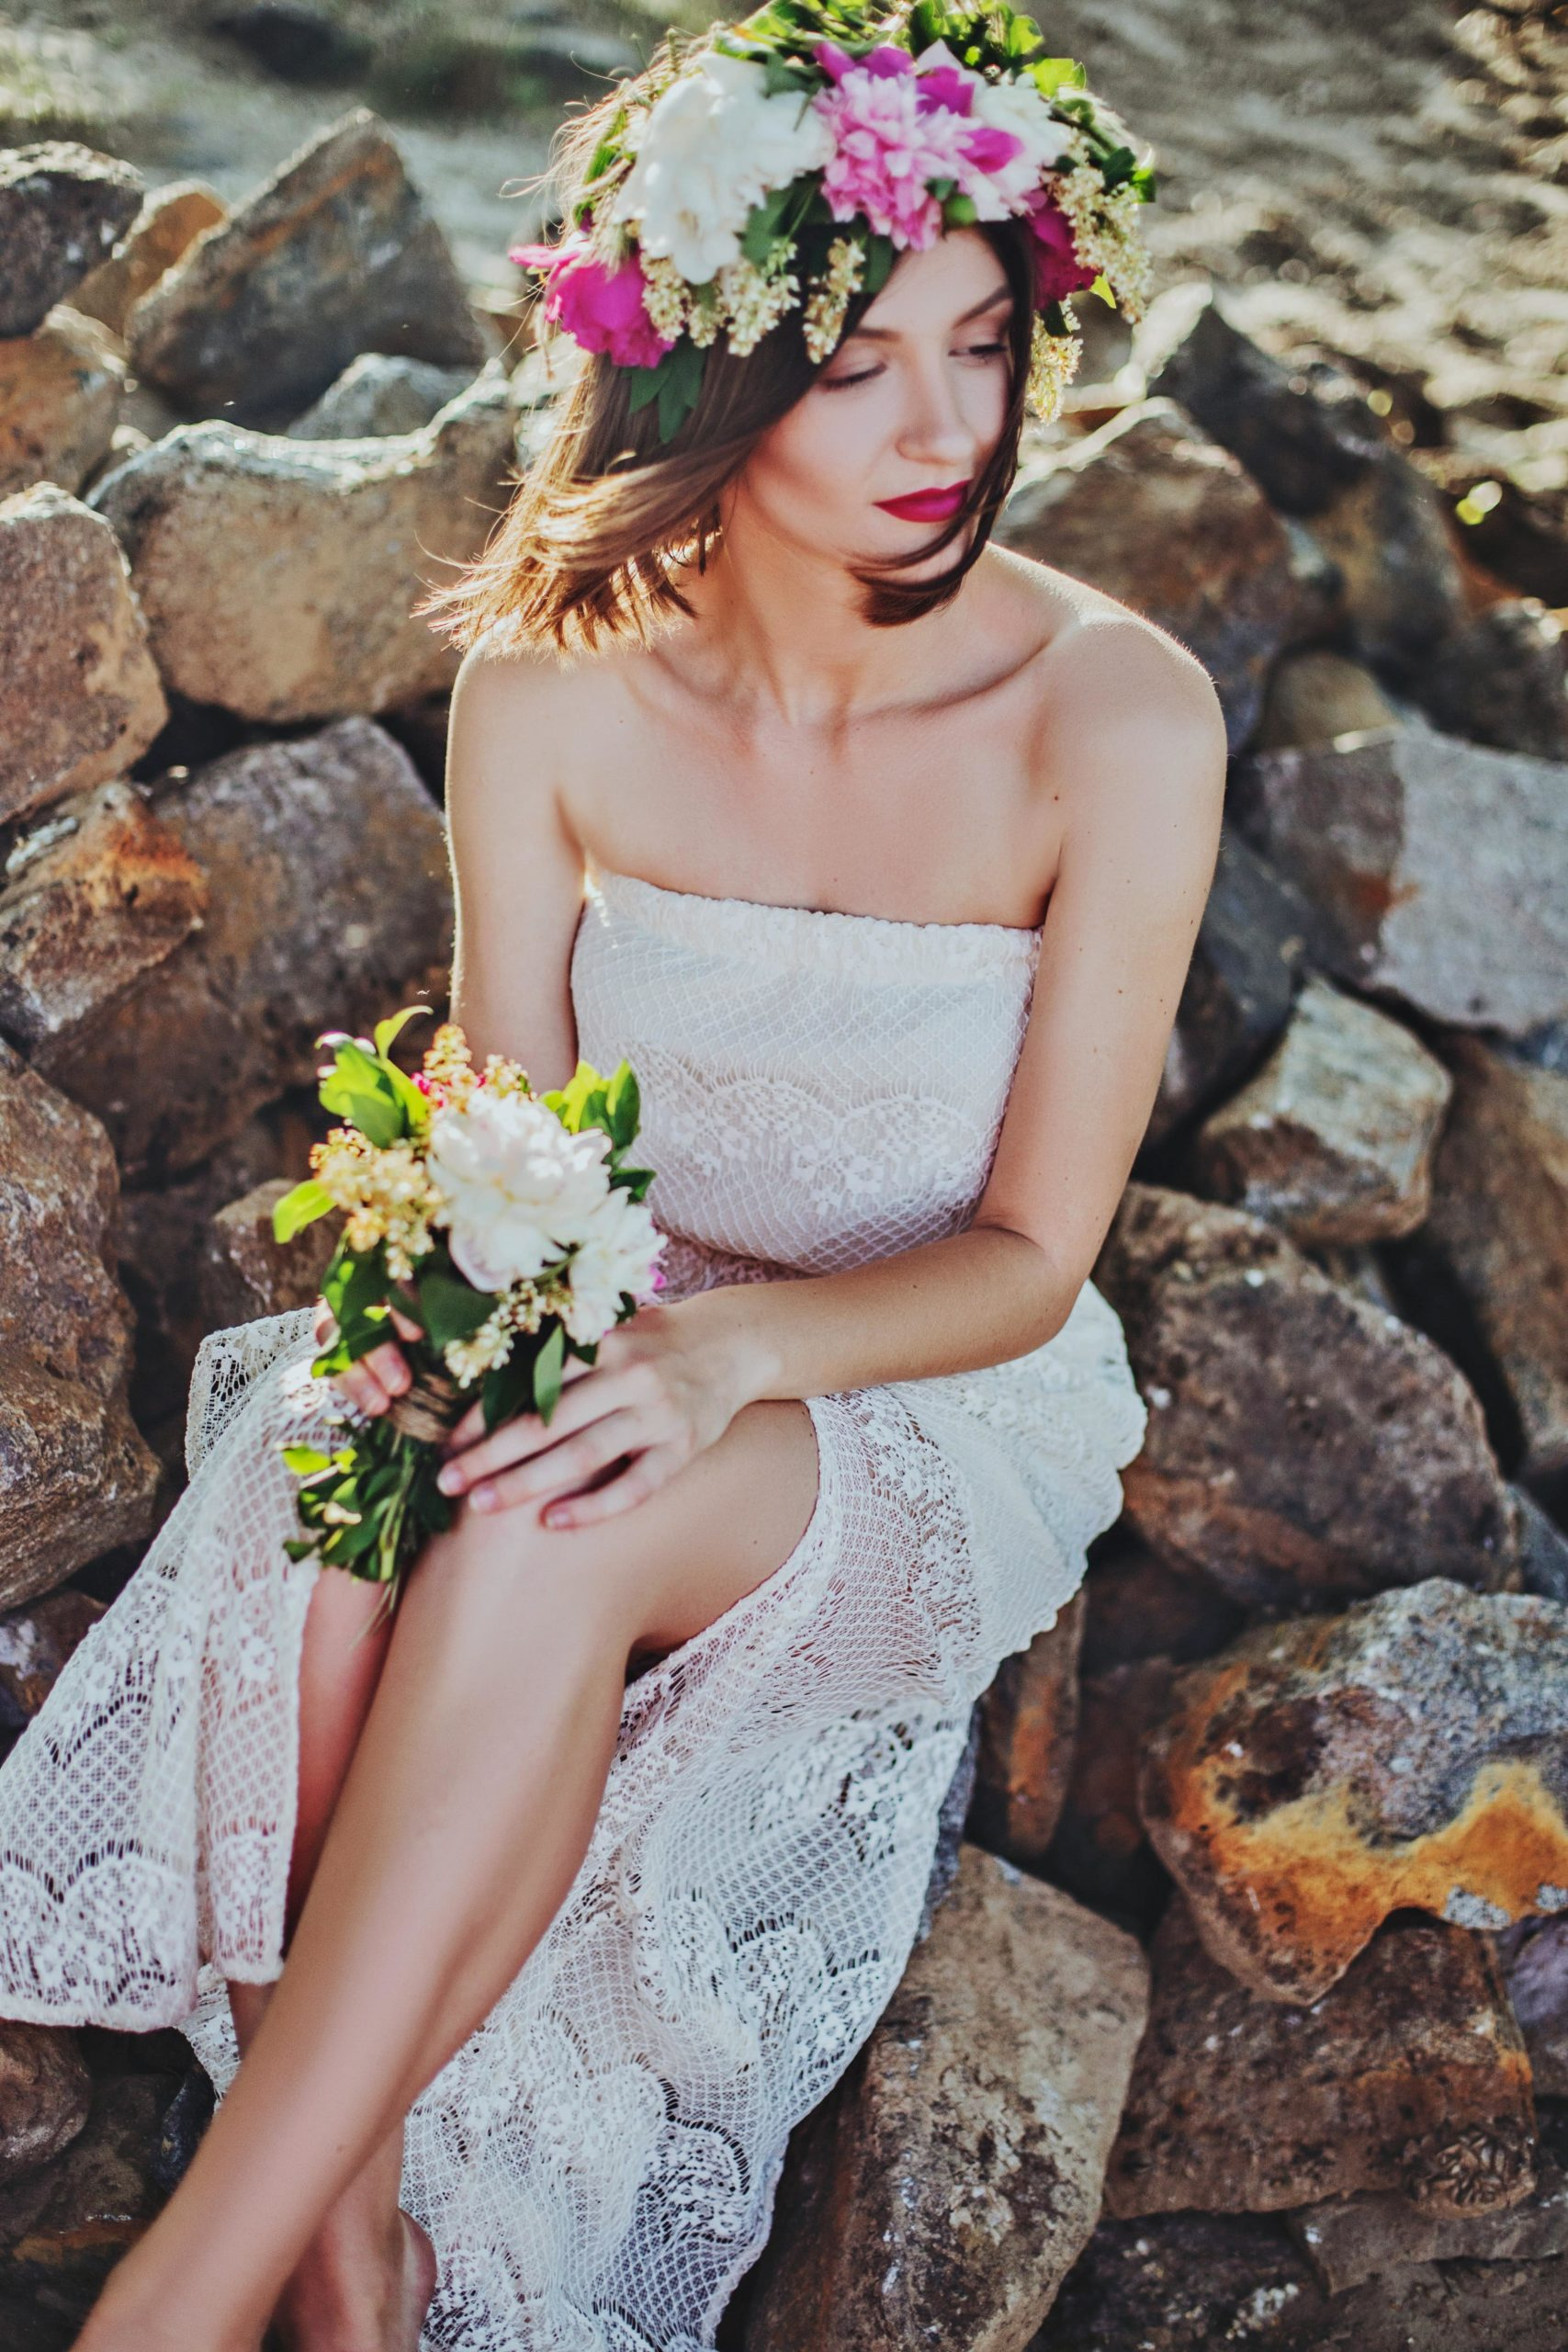 woman posing with little makeup in a wedding dress, upon rocks.